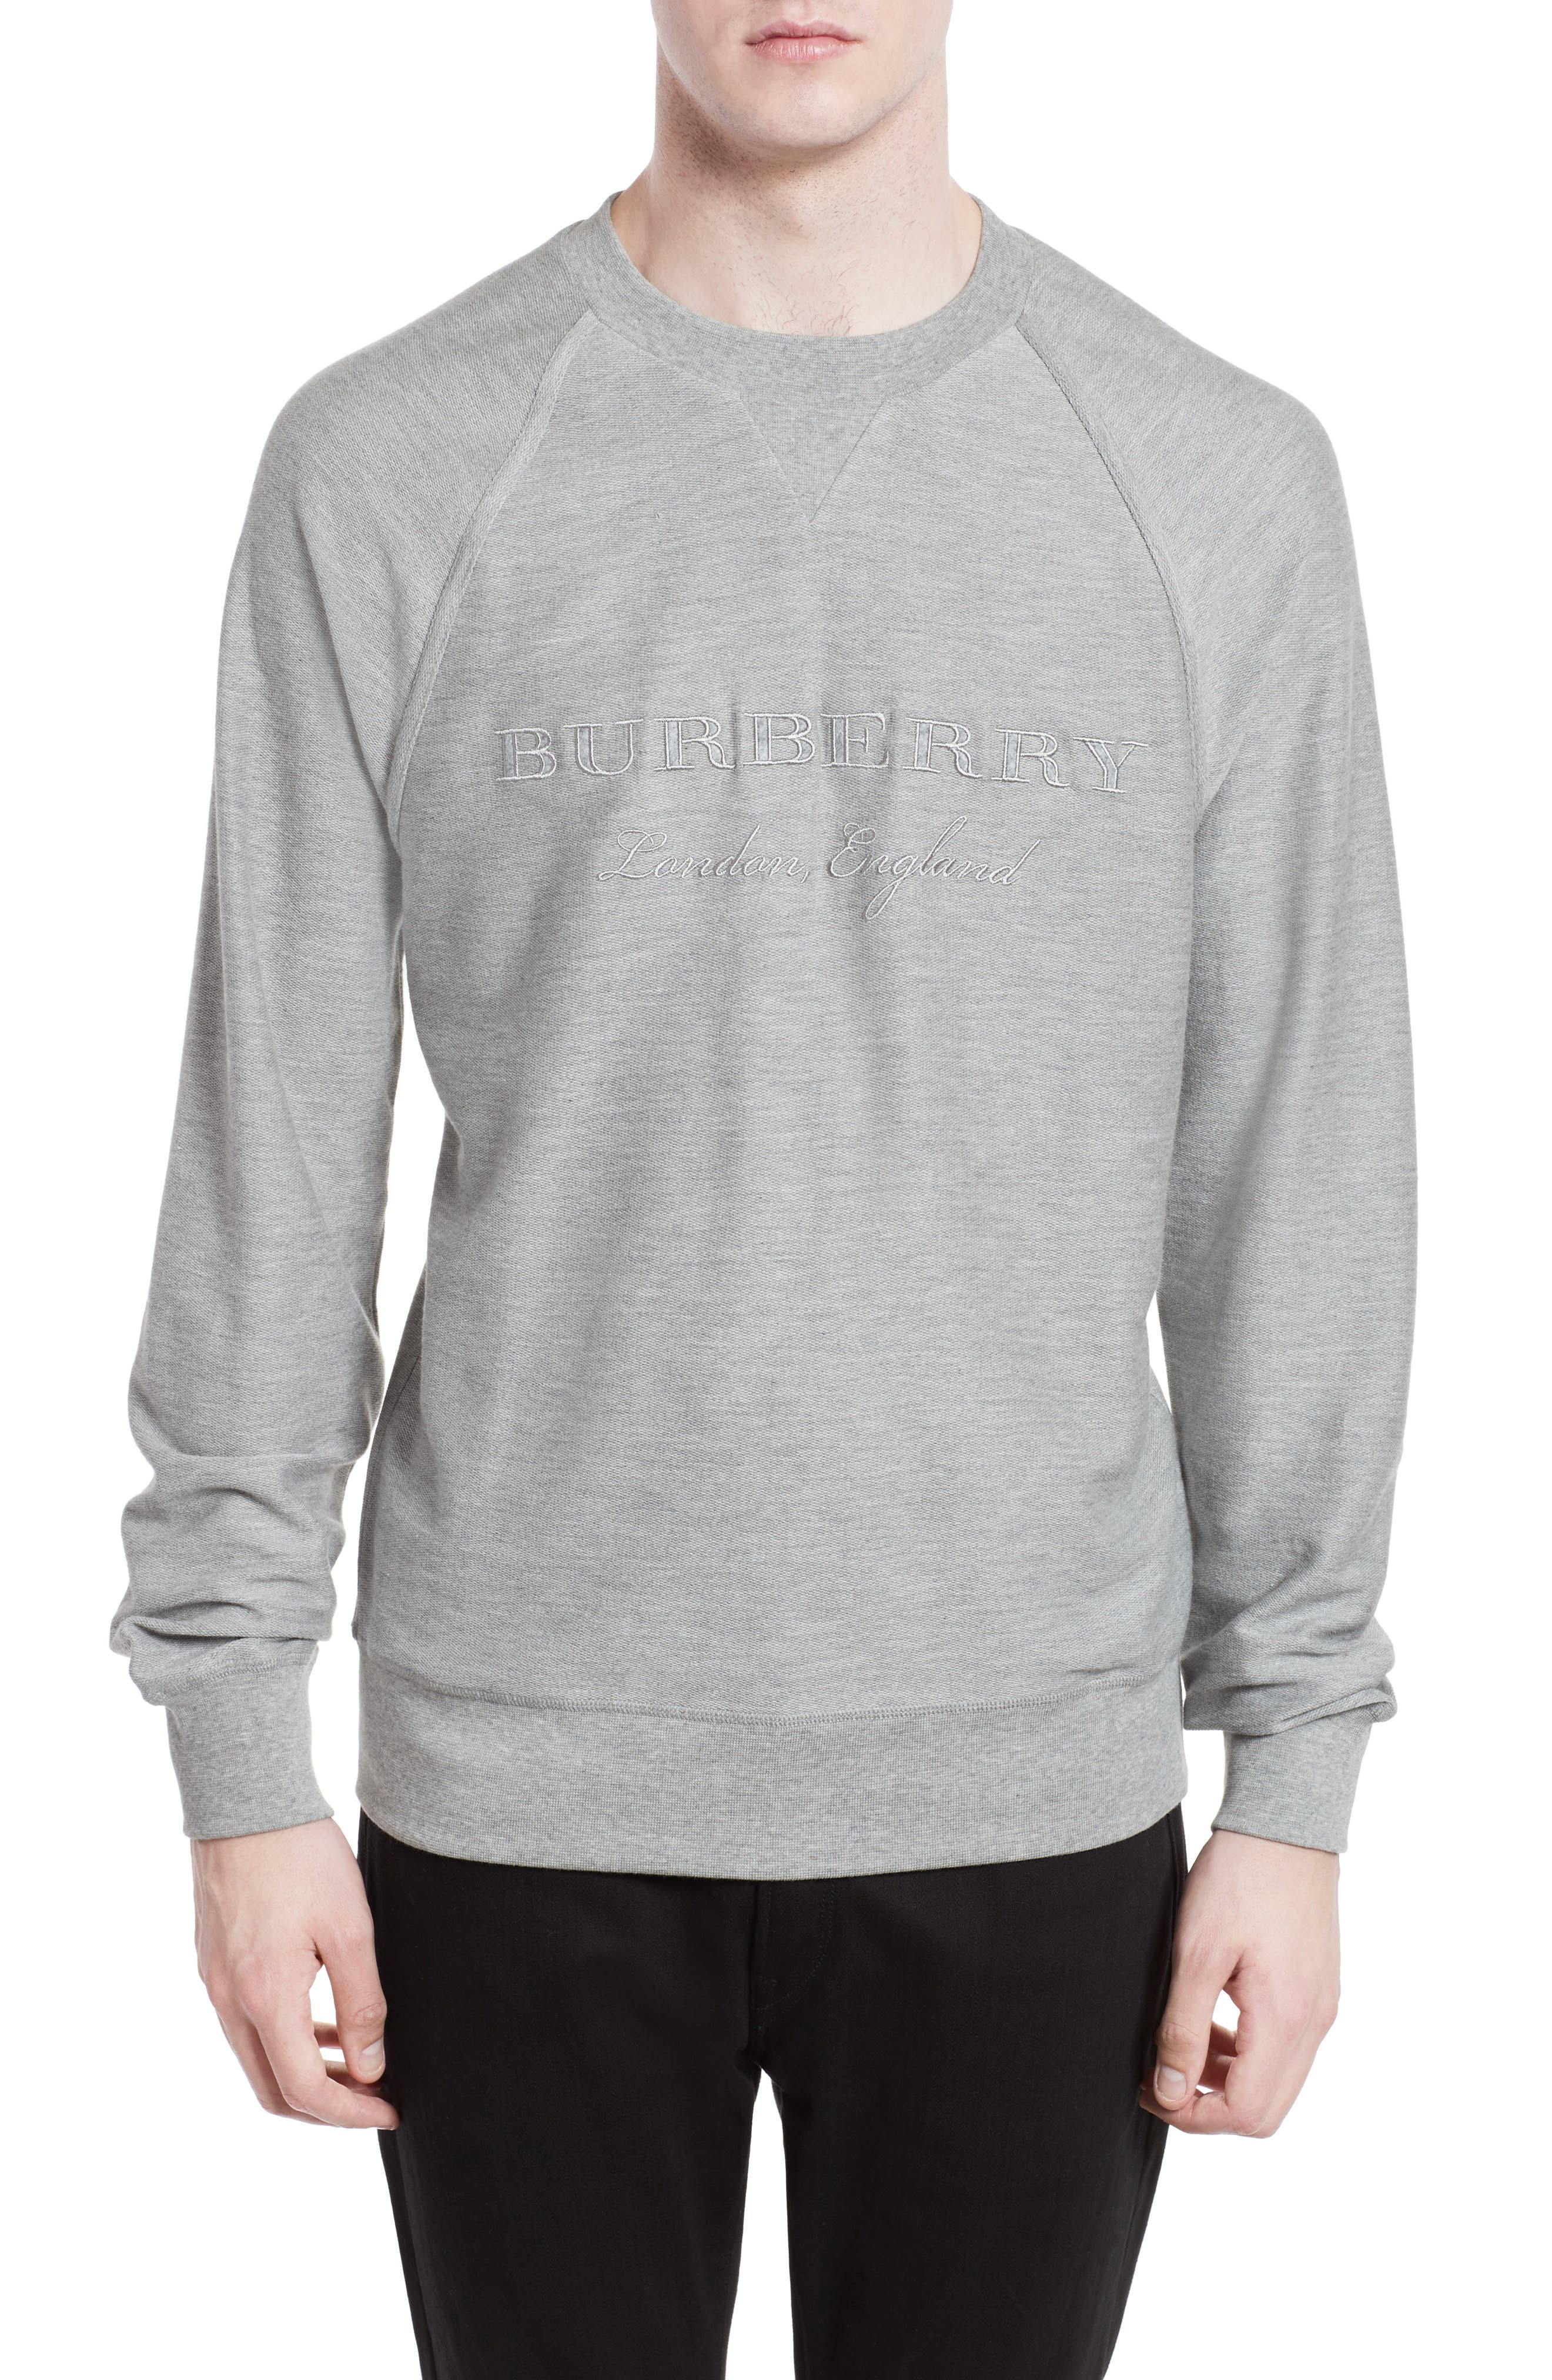 Burberry Coleford Embroidered Logo Sweatshirt